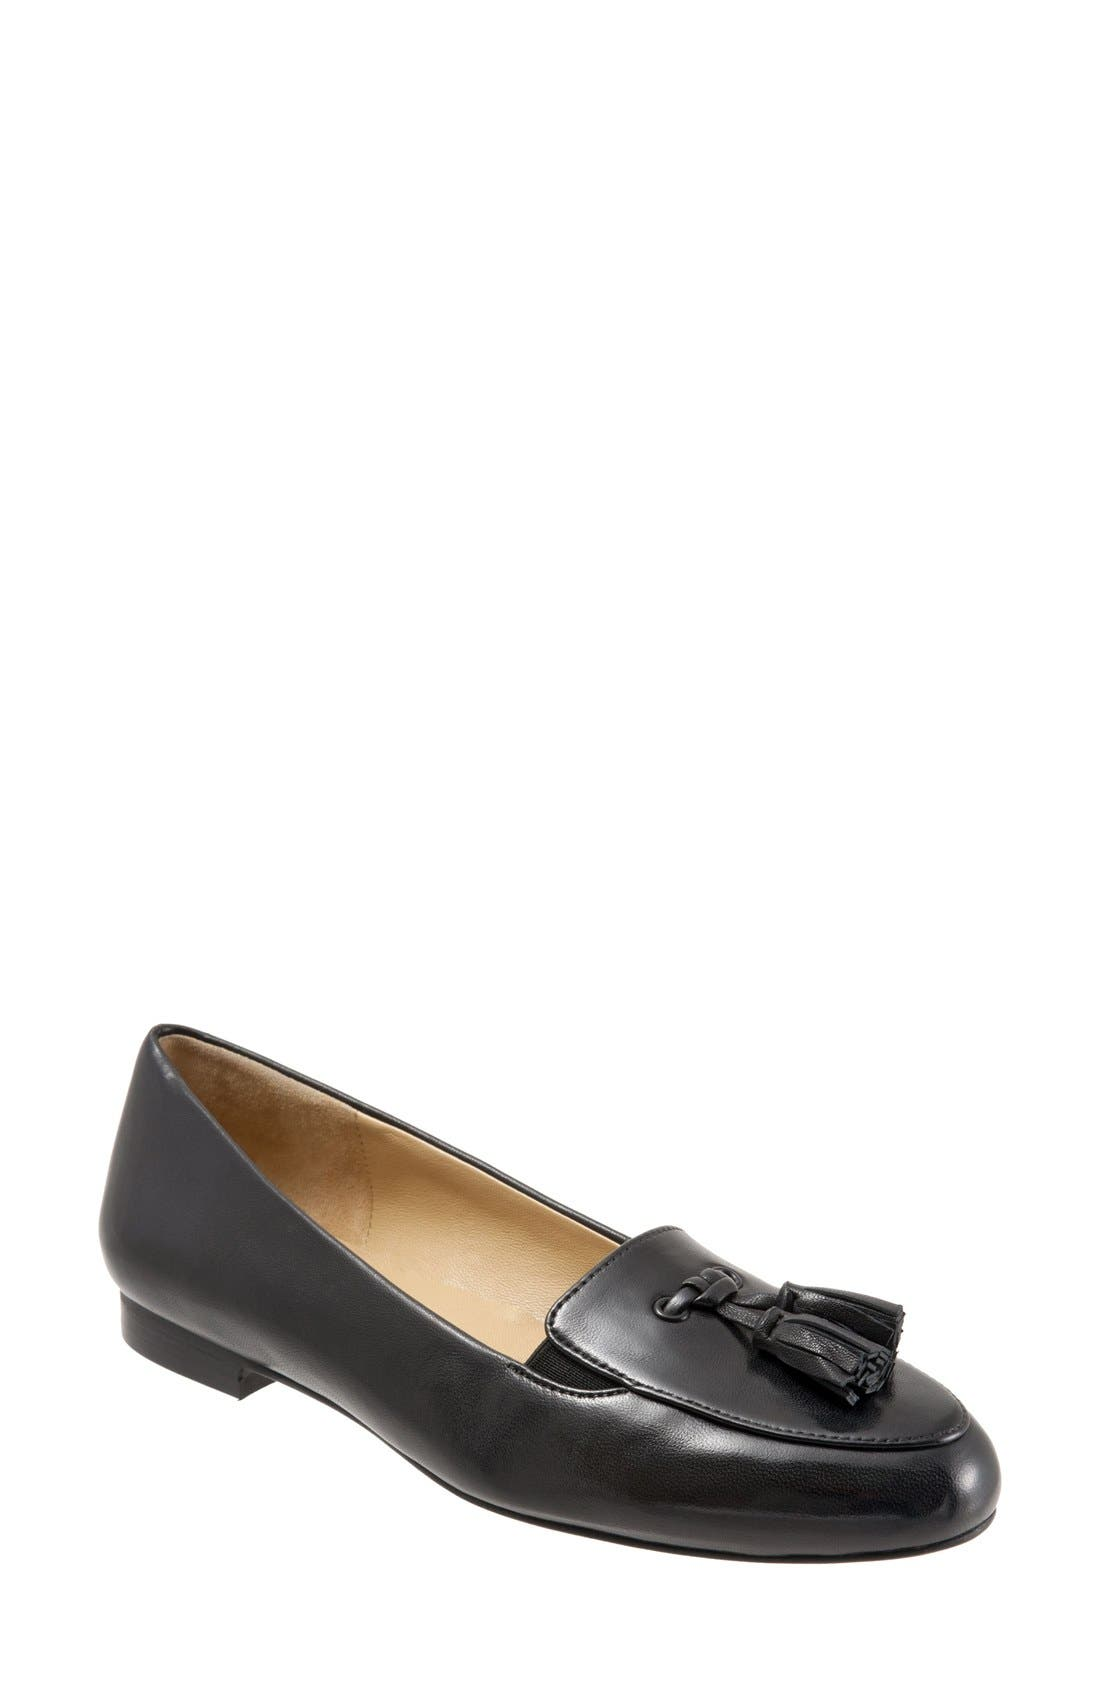 TROTTERS 'Caroline' Tassel Loafer, Main, color, BLACK LEATHER